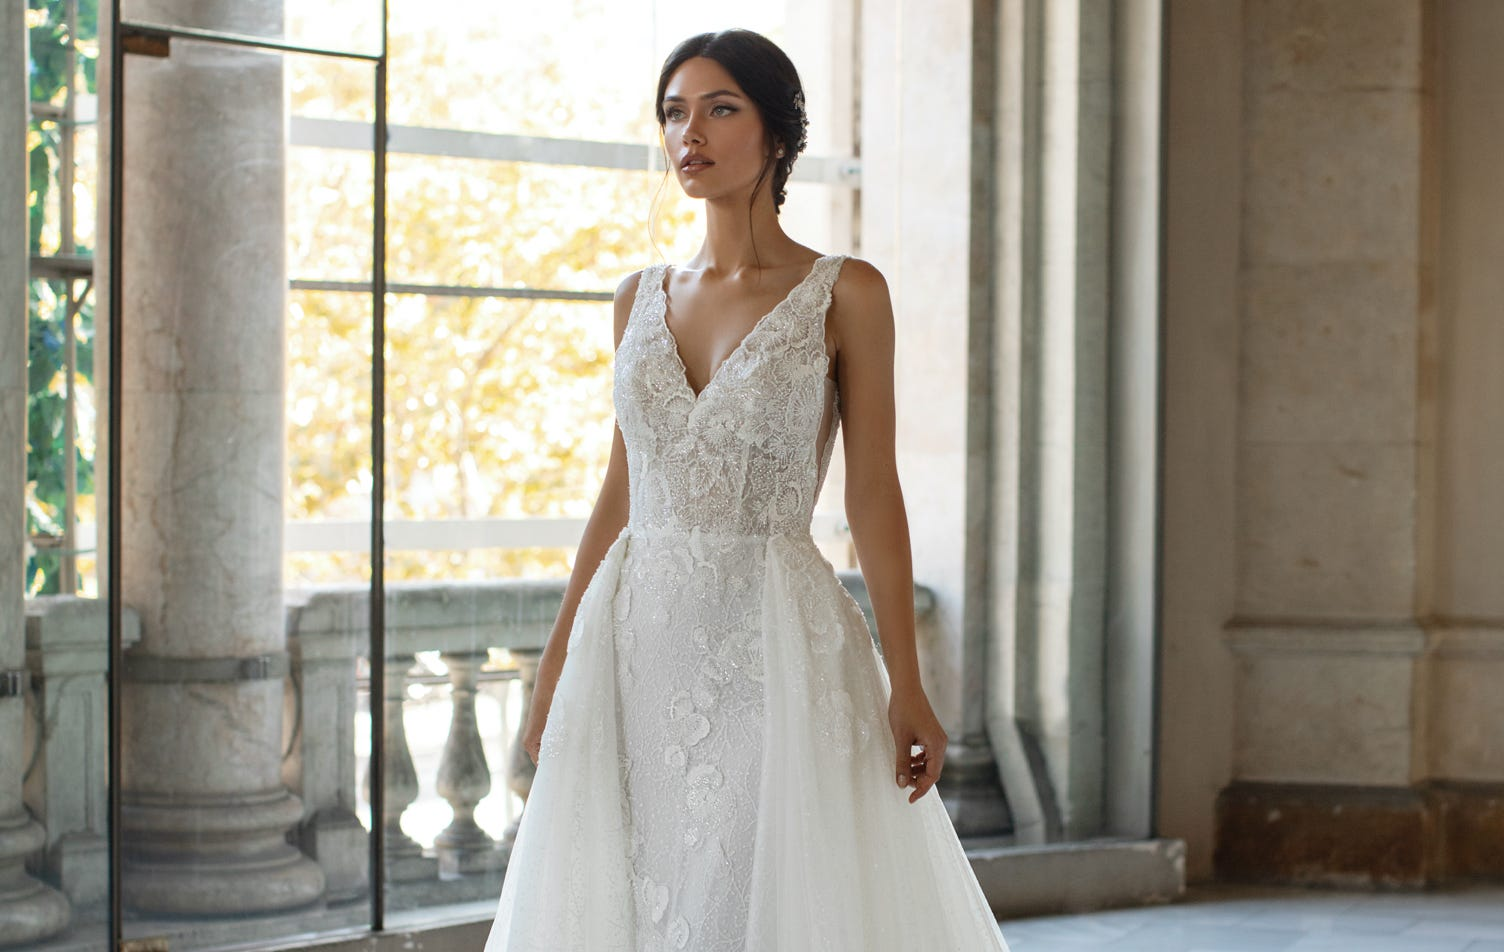 The convertible wedding dress? Yes, it's a thing!